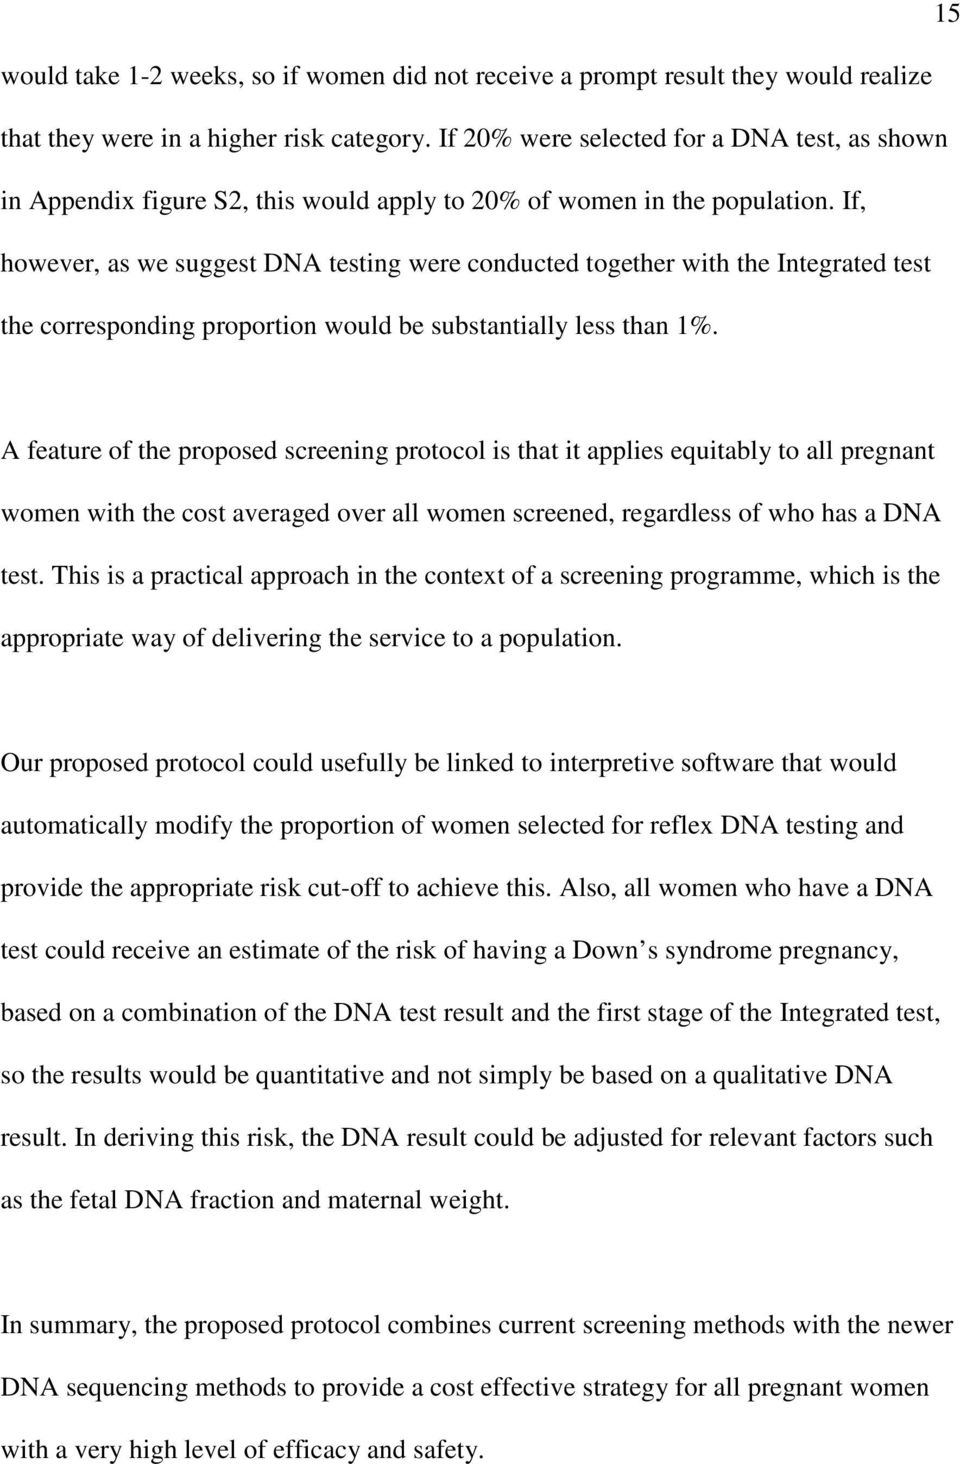 If, however, as we suggest DNA testing were conducted together with the Integrated test the corresponding proportion would be substantially less than 1%.